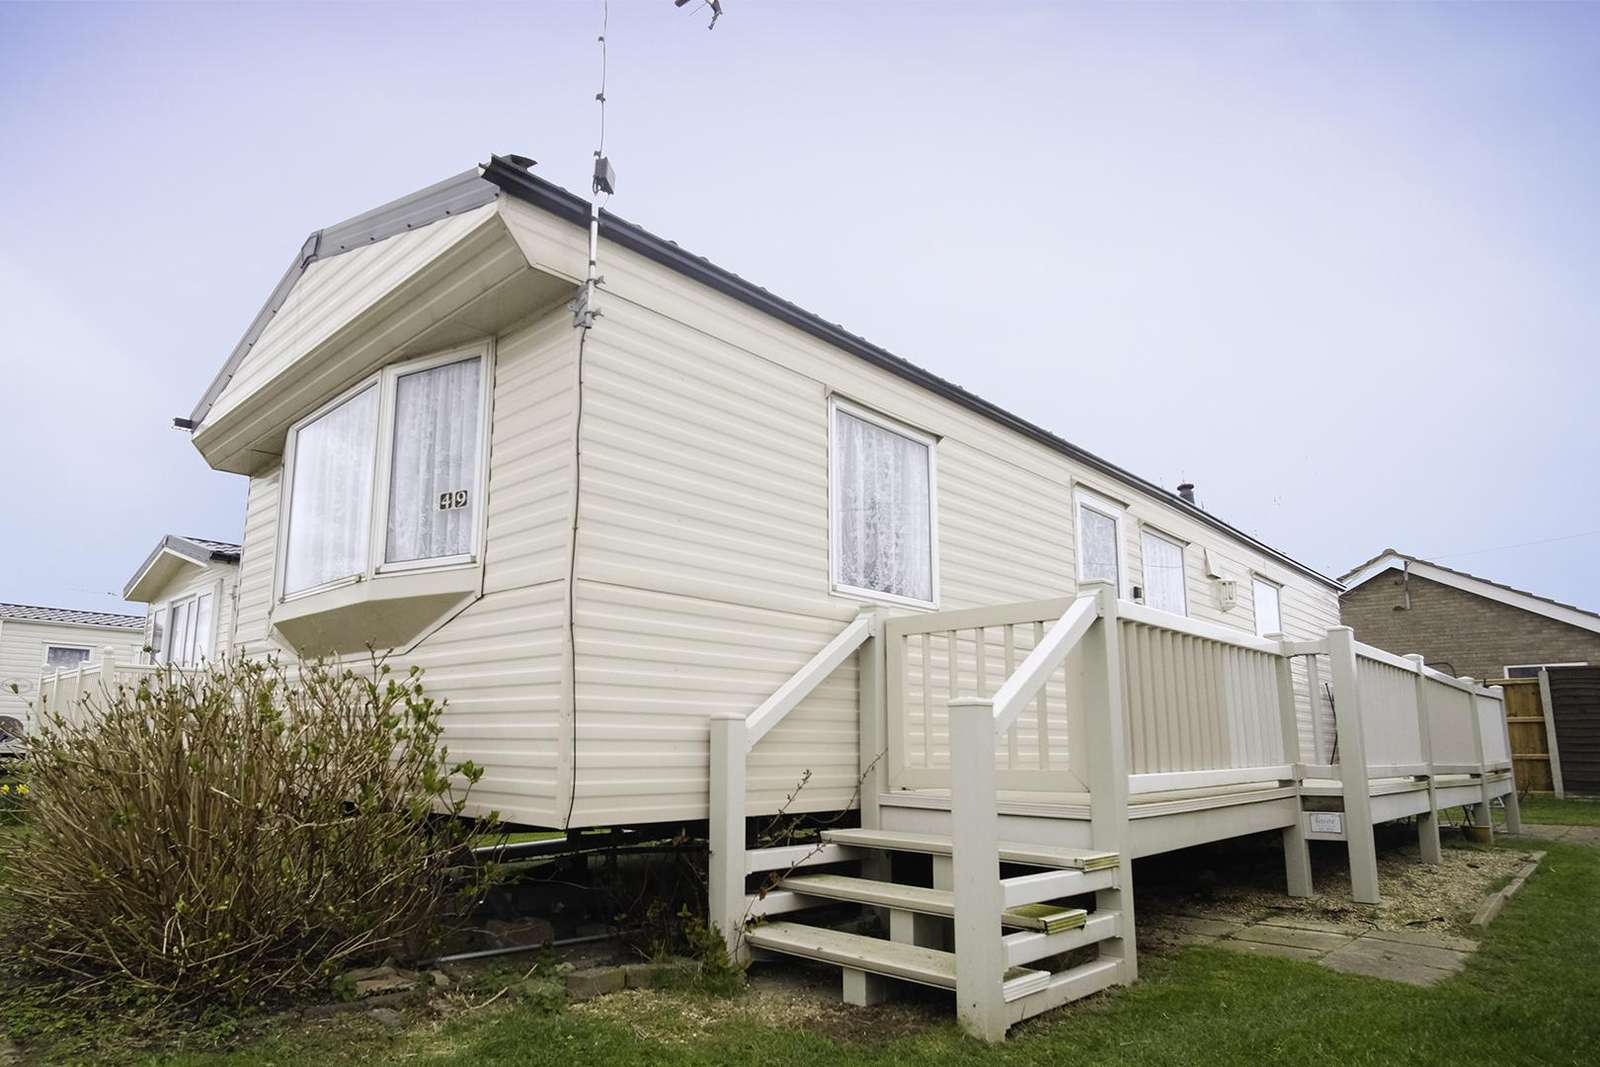 50049L – Lapwing area, 2 bedroom, 6 berth caravan with decking. Ruby rated. - property